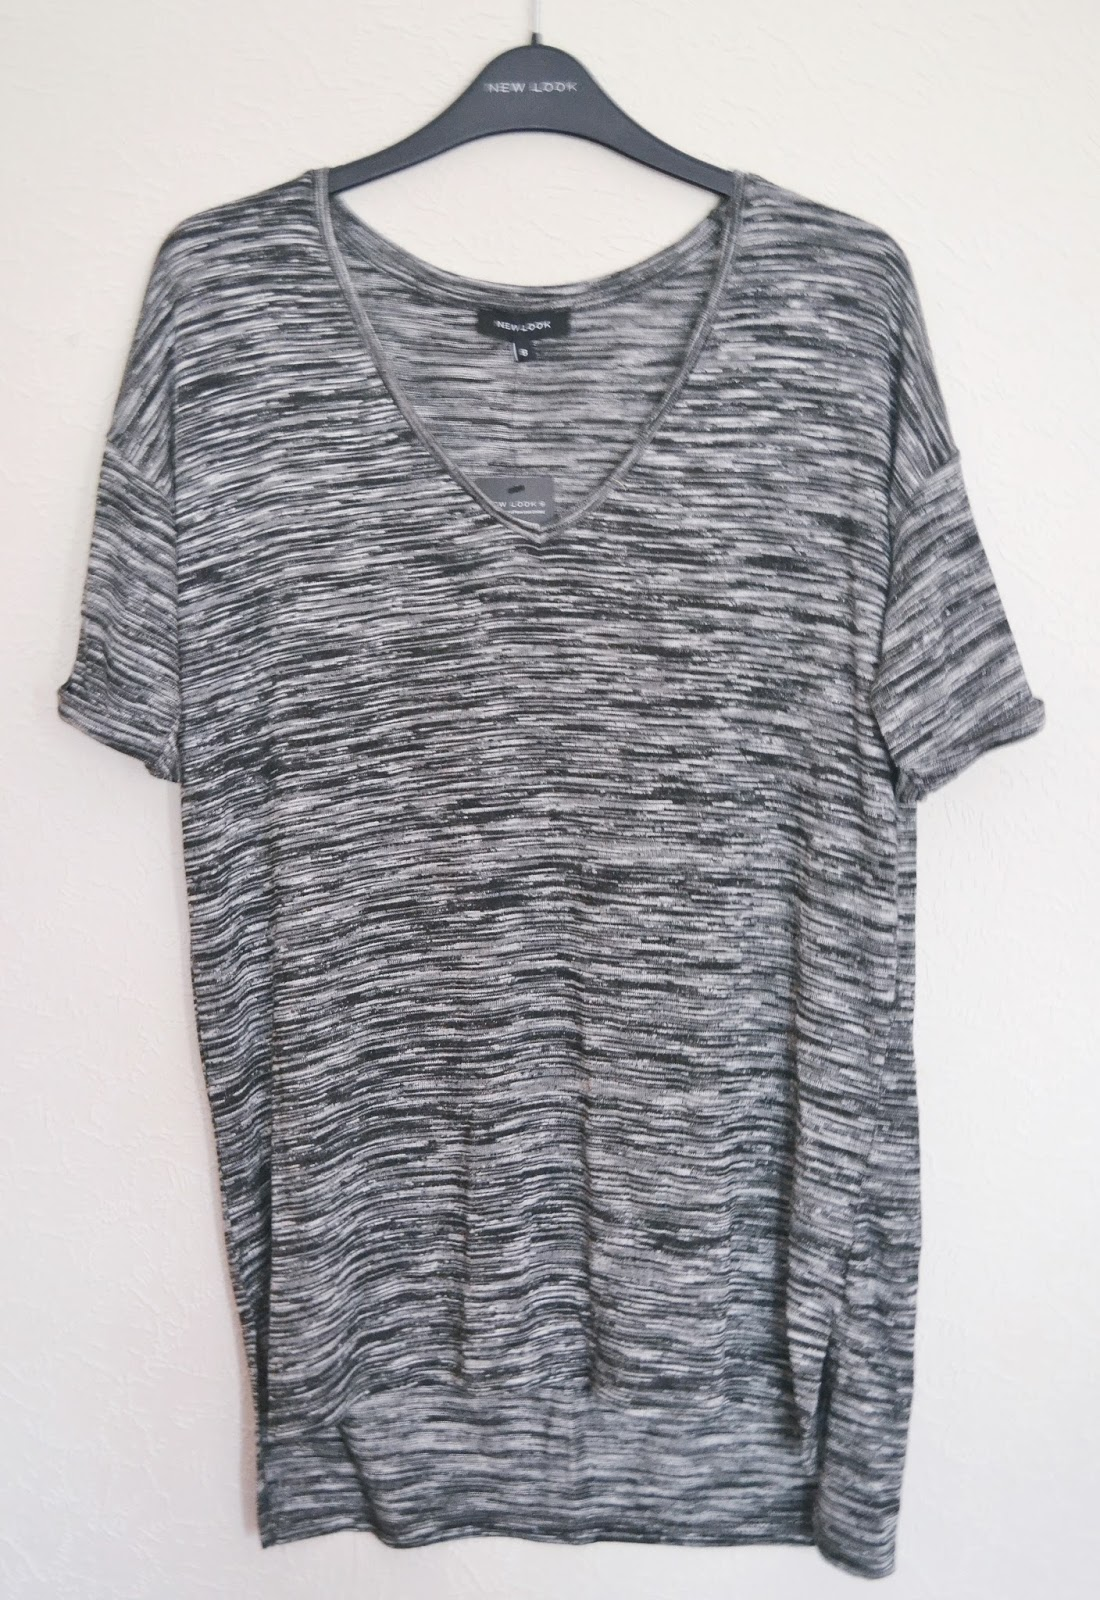 new look grey t shirt